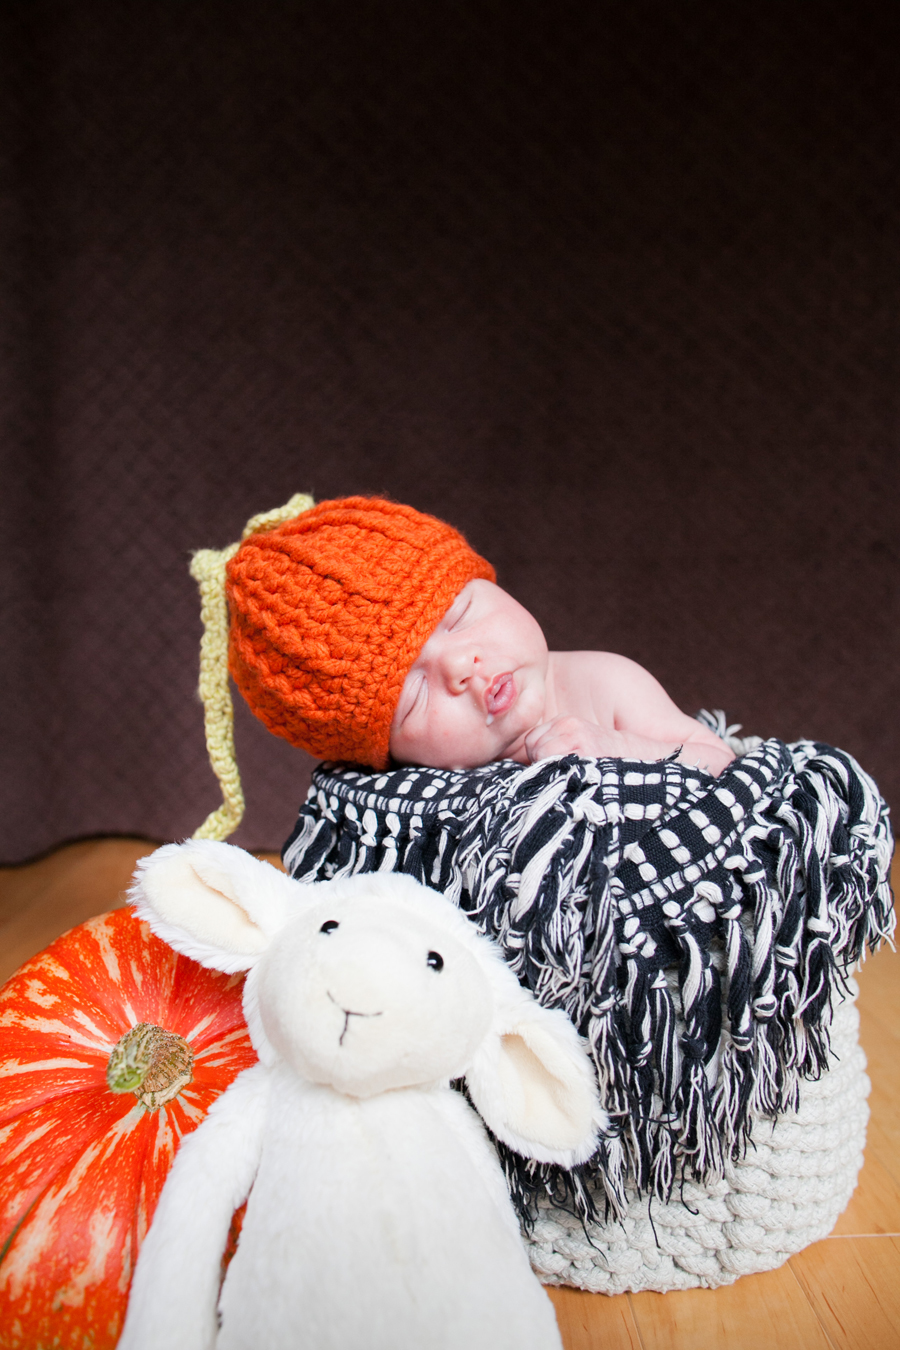 004-bellevue-newborn-photographer-solorio.jpg